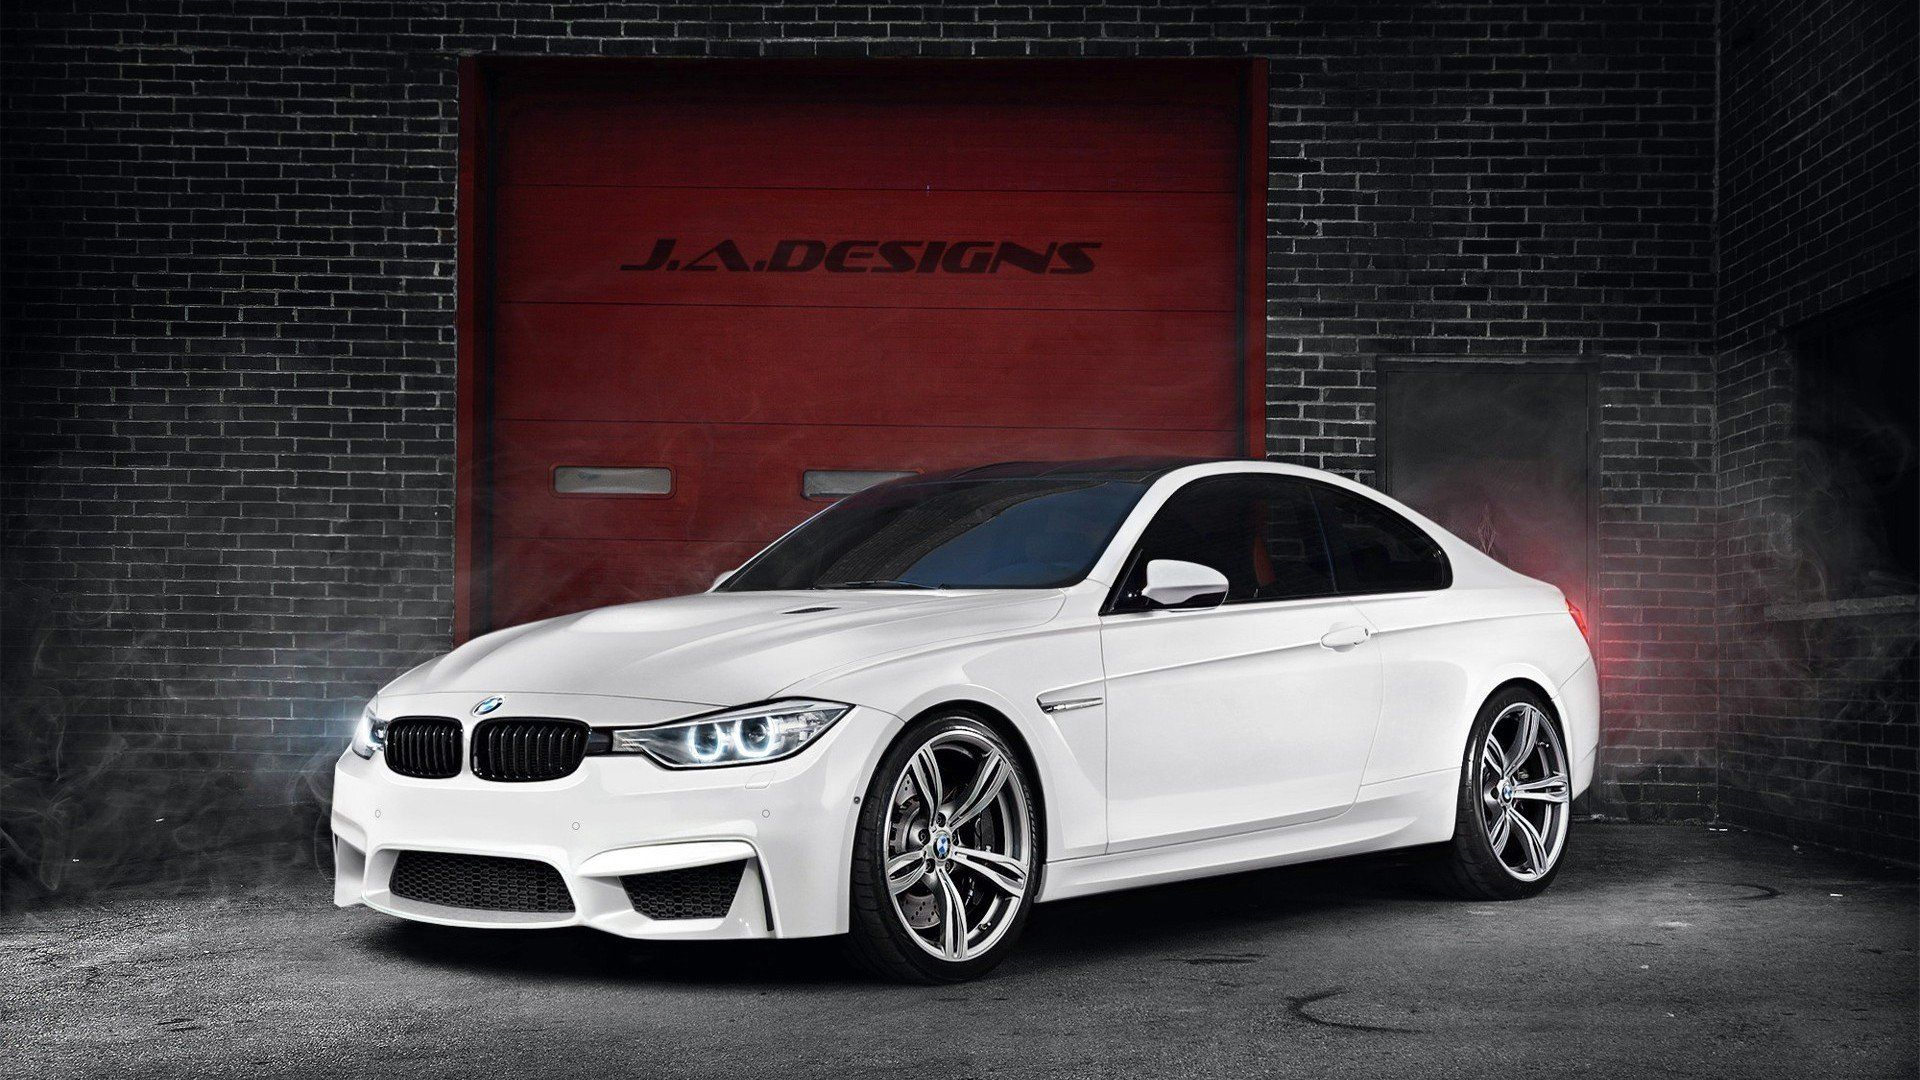 Bmw M4 Coupe Hd Wallpaper 1920 1080 Wallpaper Con Imagenes